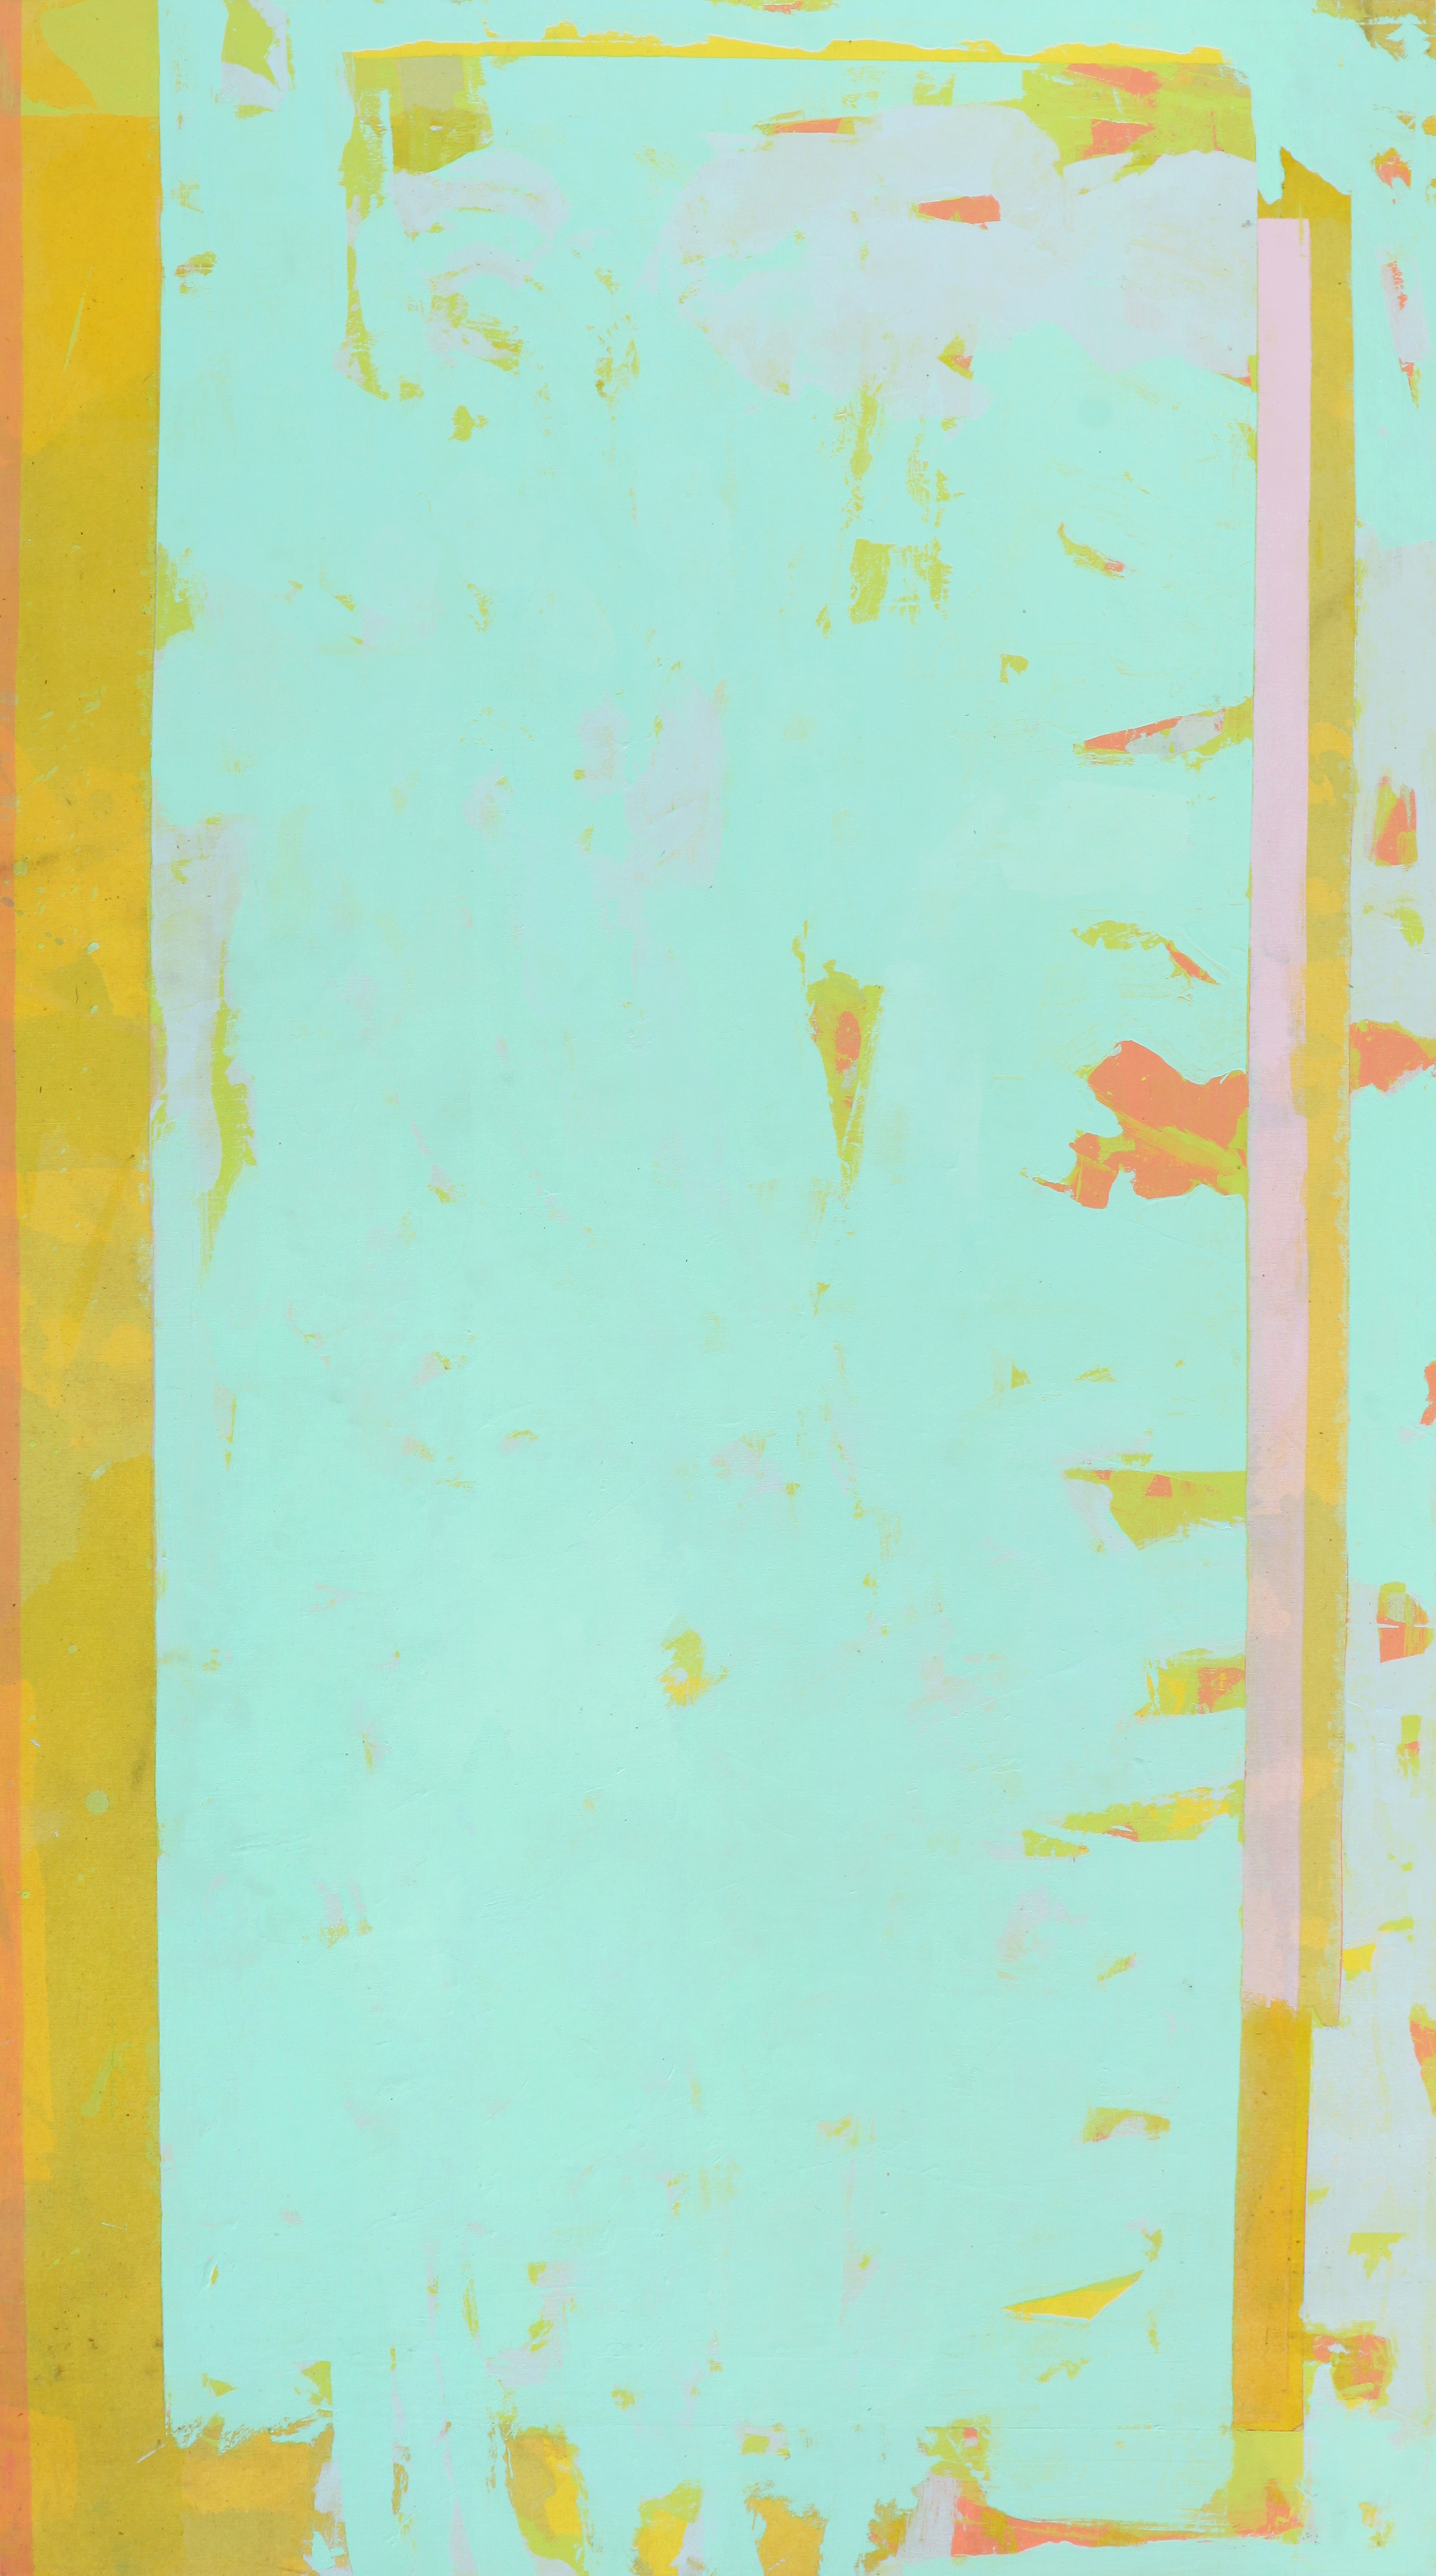 1974_UntitledNo7404_acryliconcanvas_75x41_PNF130.jpg